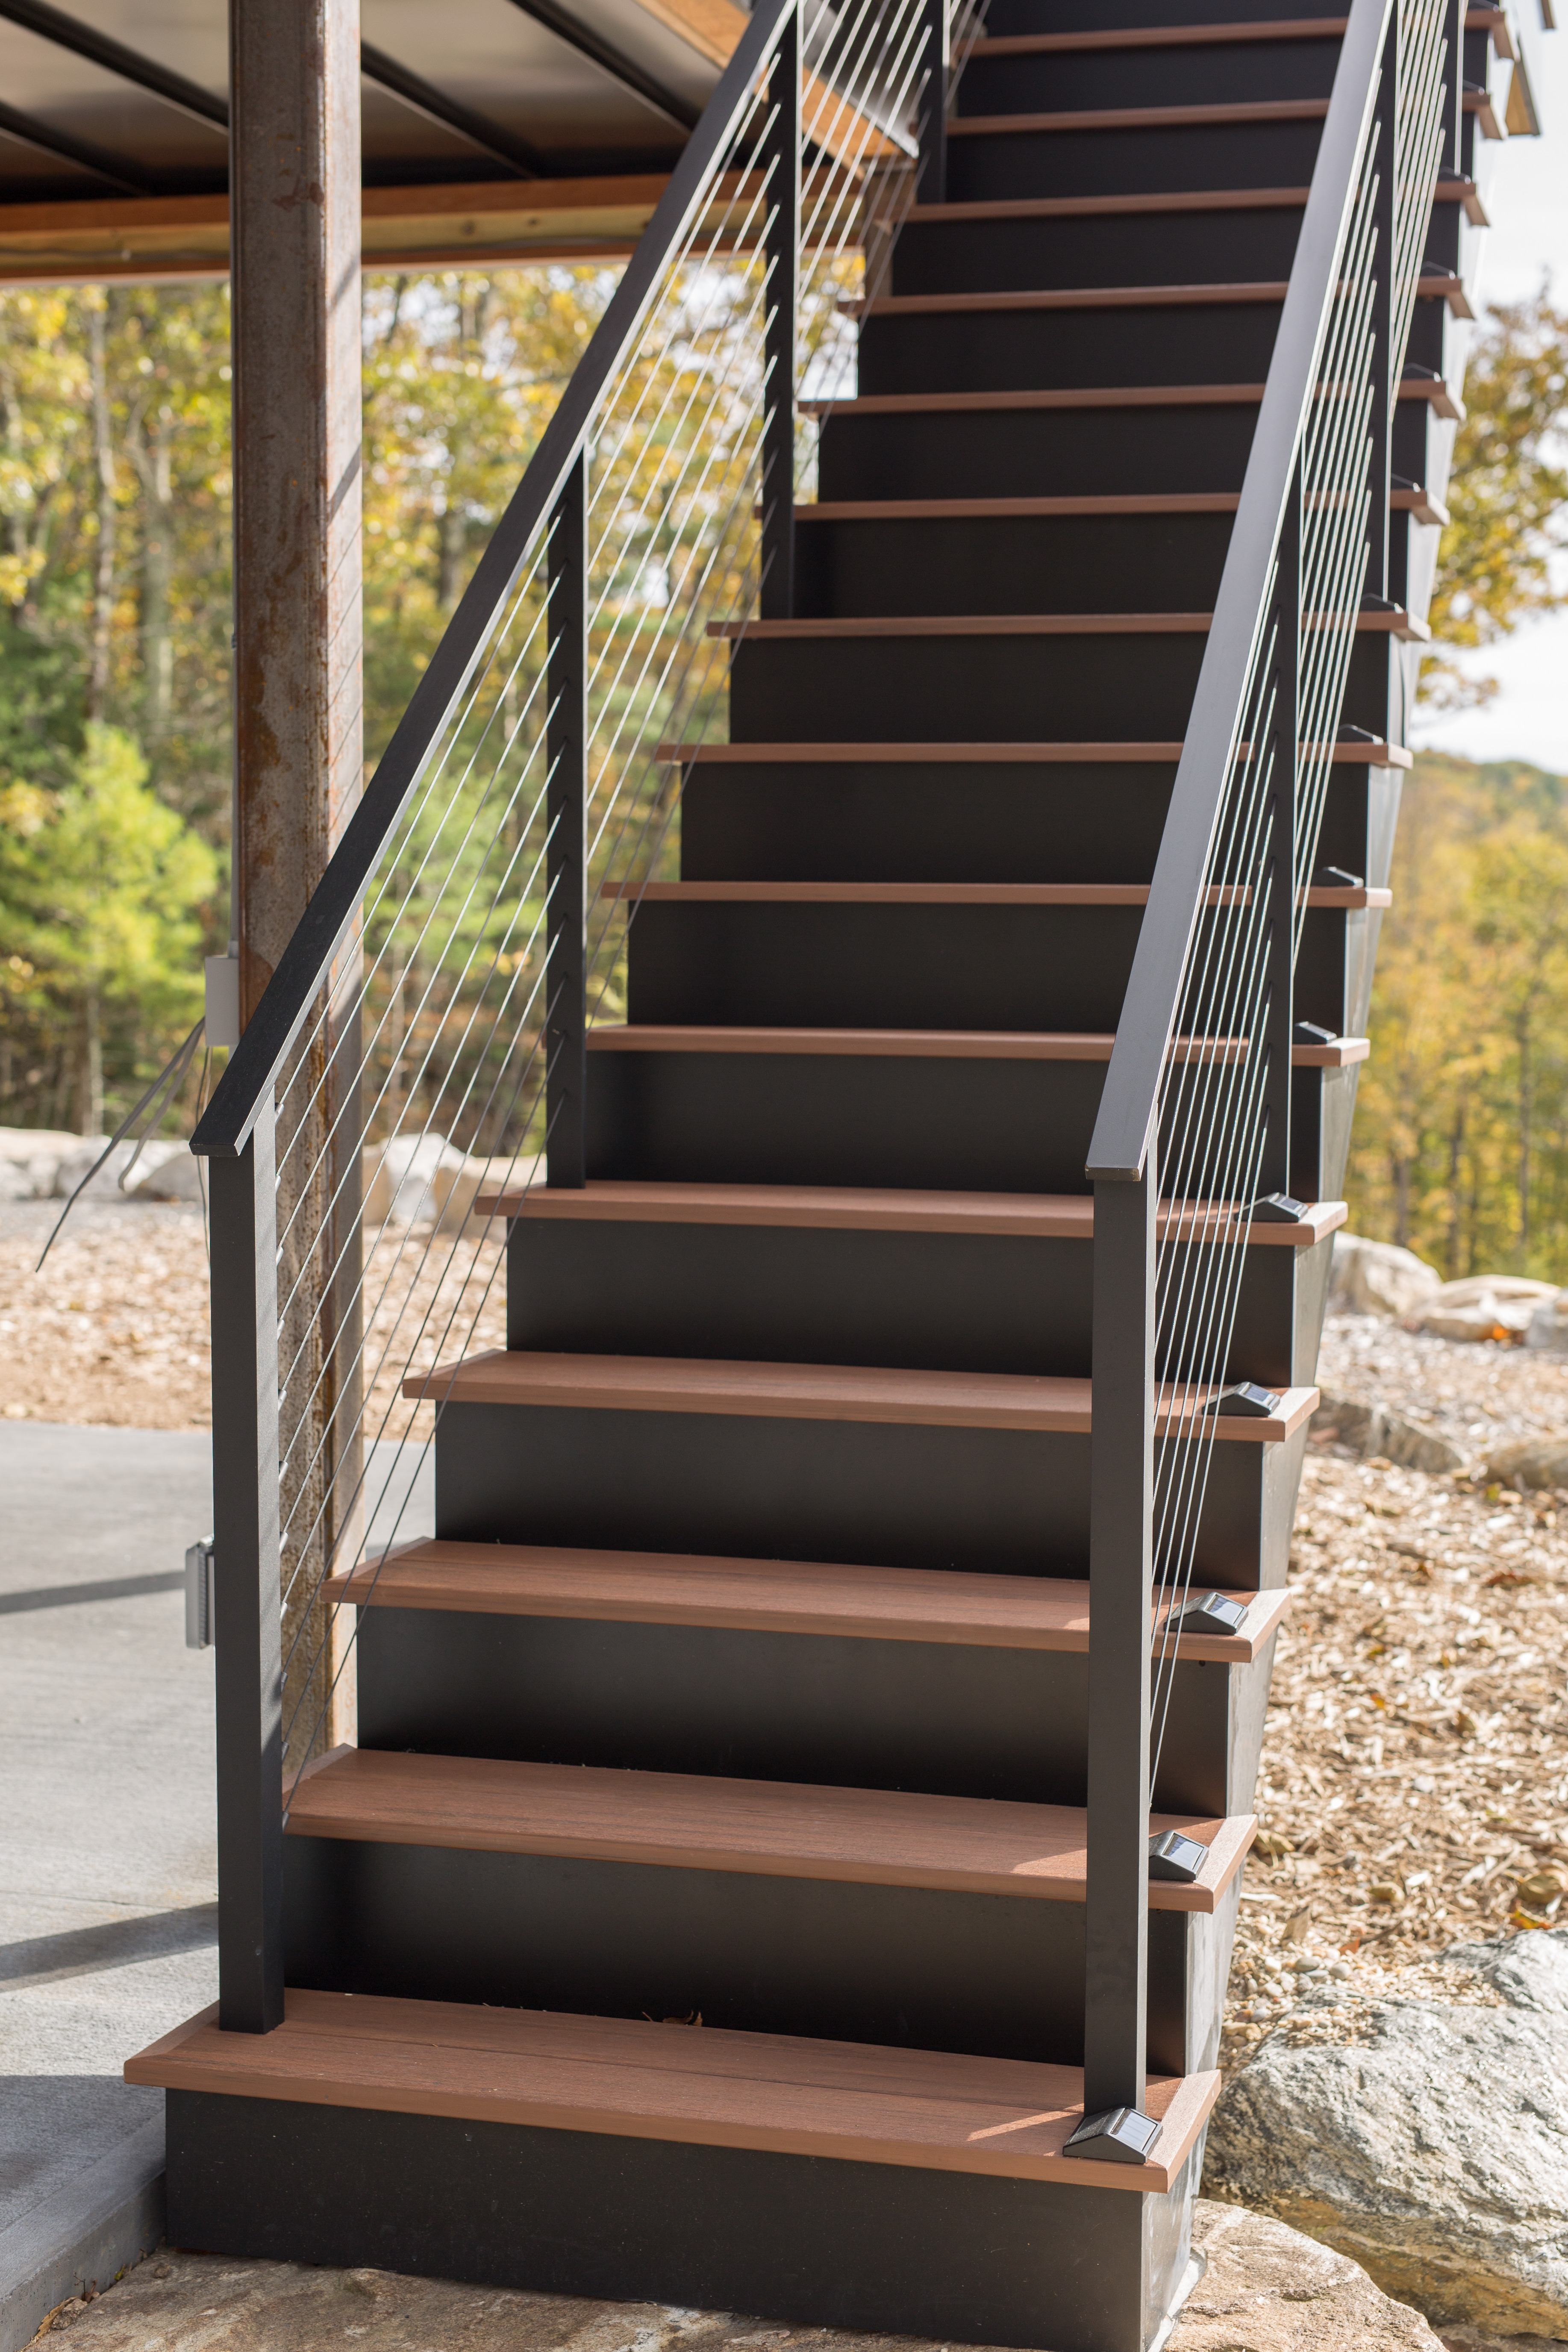 Black Cable Railing Berkshires Ma Keuka Studios | Metal Railing Stairs Outdoor | Stair Treads | Aluminum | Railing Ideas | Wrought Iron | Spiral Staircase